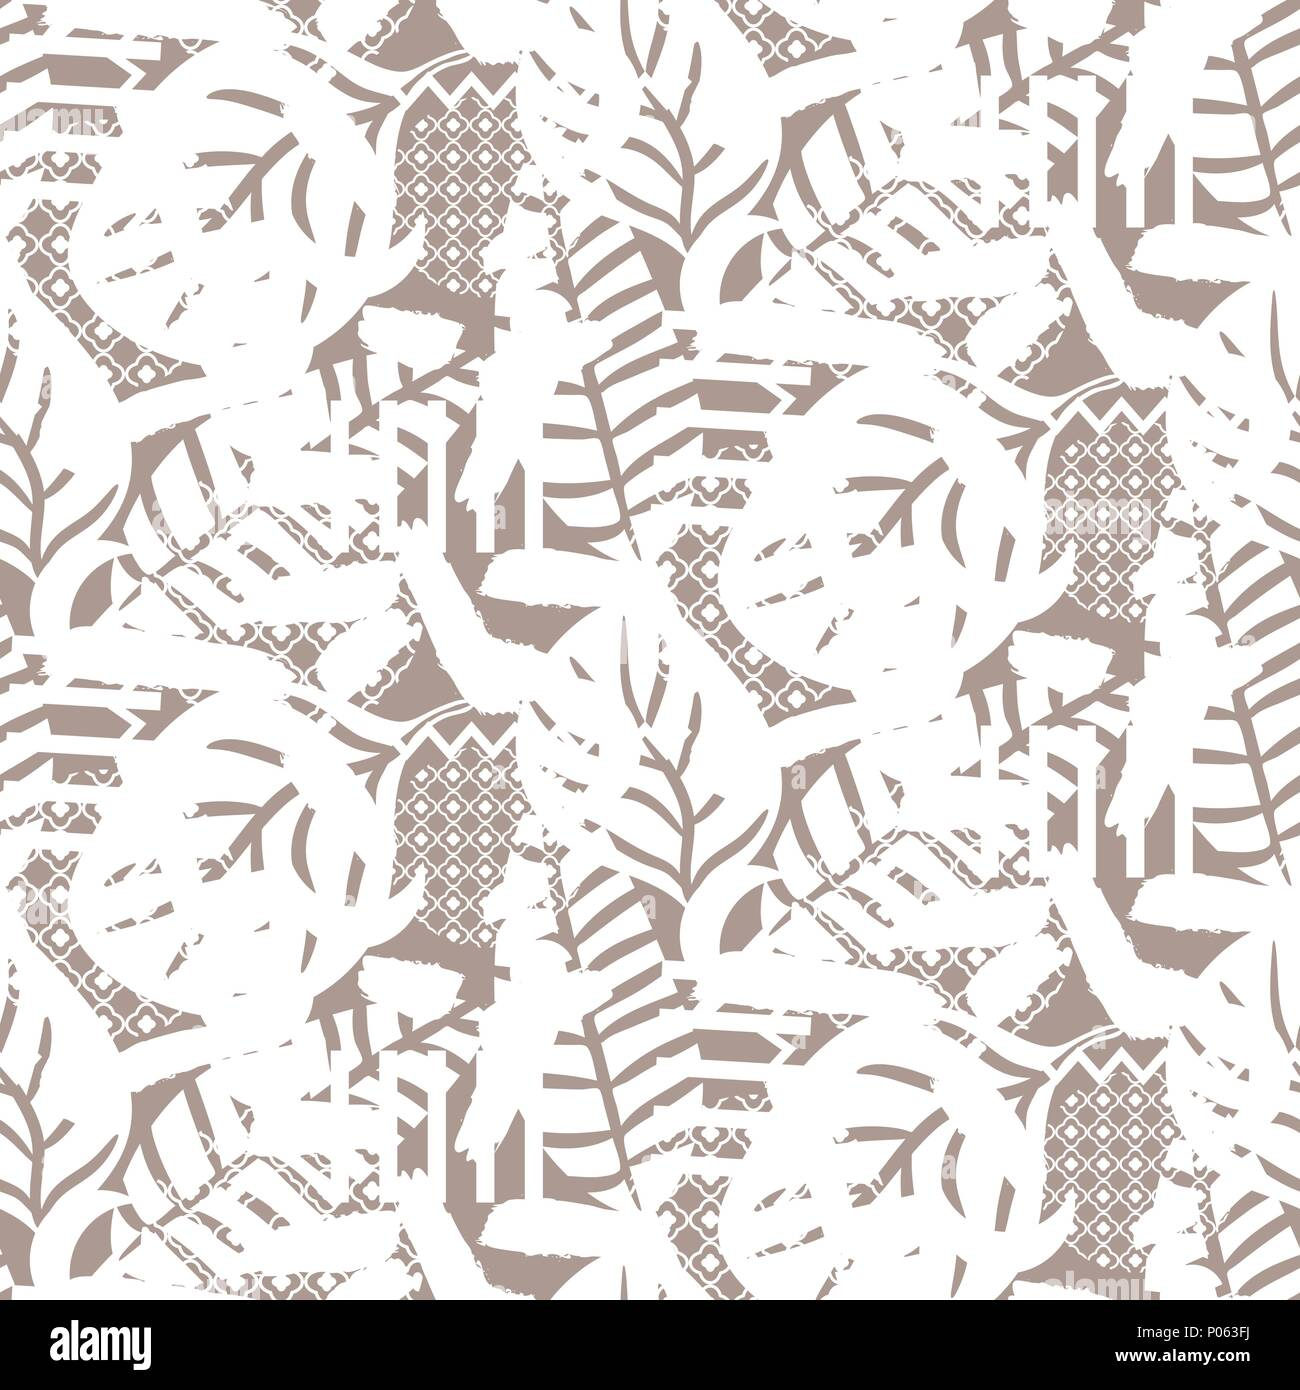 Stylized nature motif background texture. Beige neutral seamless pattern. - Stock Image